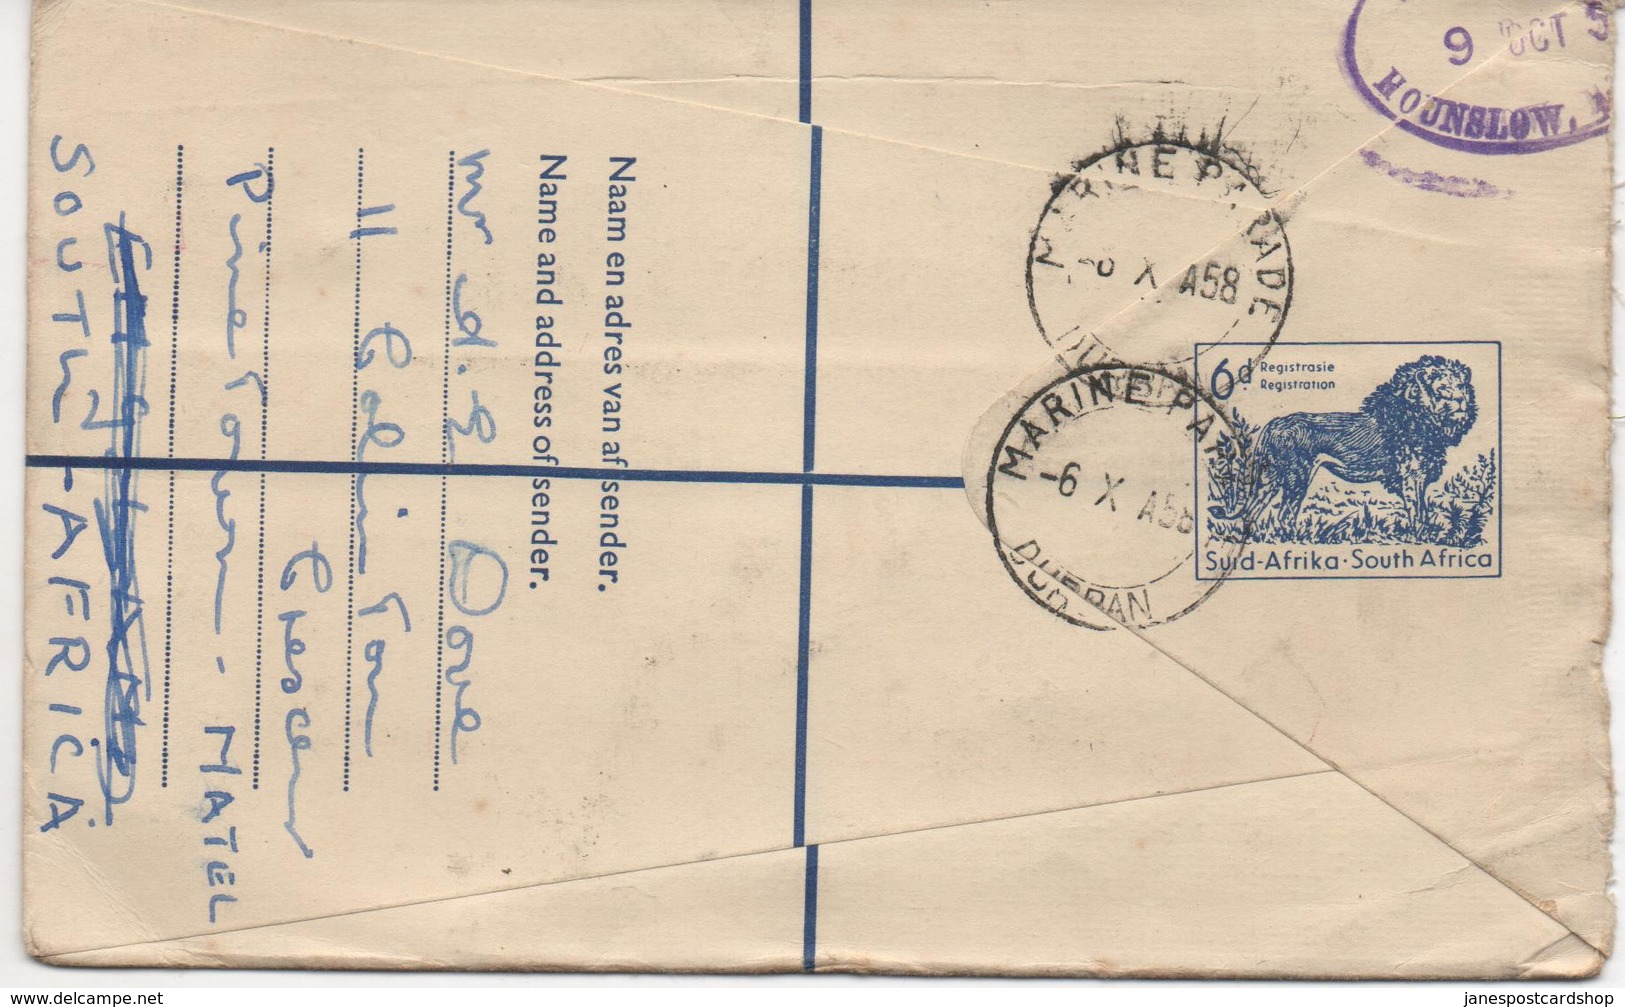 REGISTERED LETTER COVER FROM DURBAN - SOUTH AFRICA - STAMP MISSING - Africa (Other)